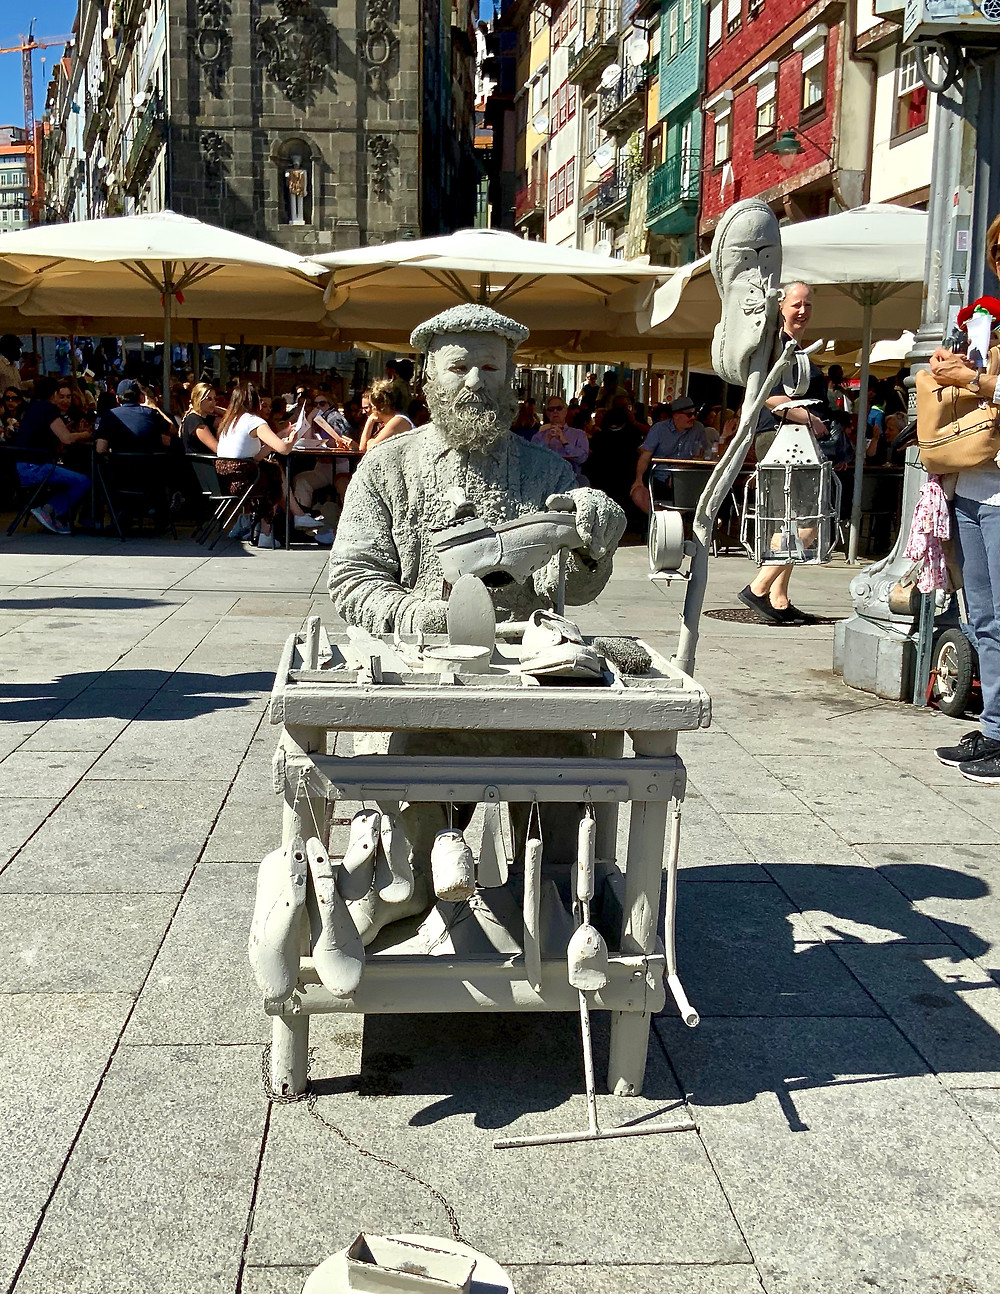 a street entertainer making like a statue in the Ribeira